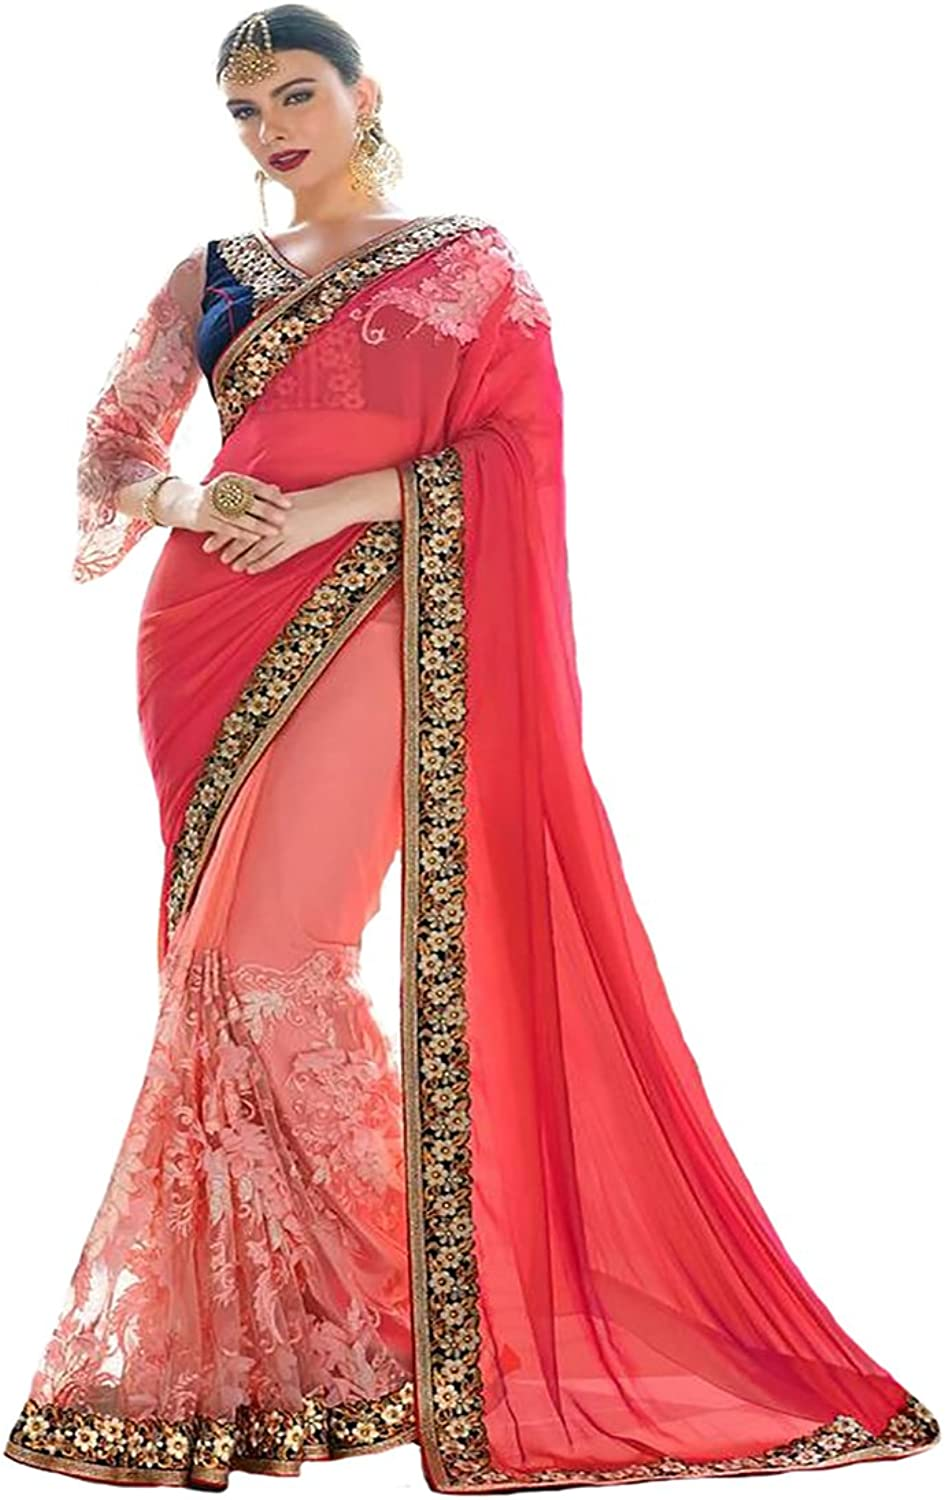 Bridal Saree Sari Blouse New Launch Ethnic Collection Formal Wedding Ceremony 9211